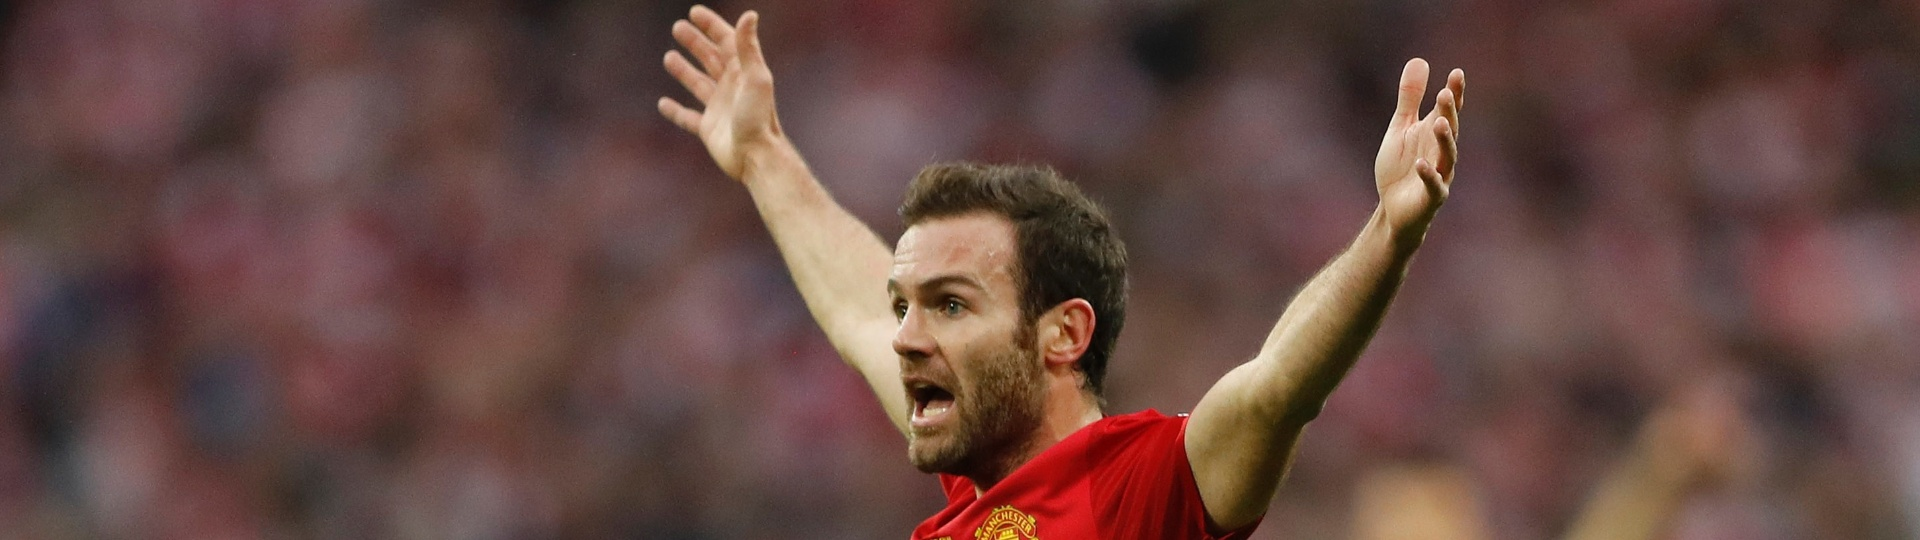 Juan Mata, do Manchester United, reclama com juiz após gol impedido do Southampton